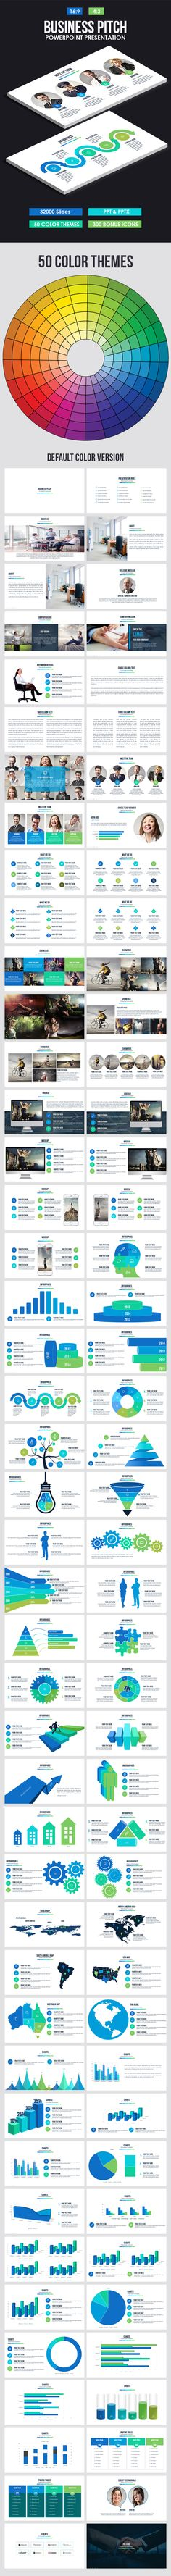 Business Pitch Powerpoint Presentation Template